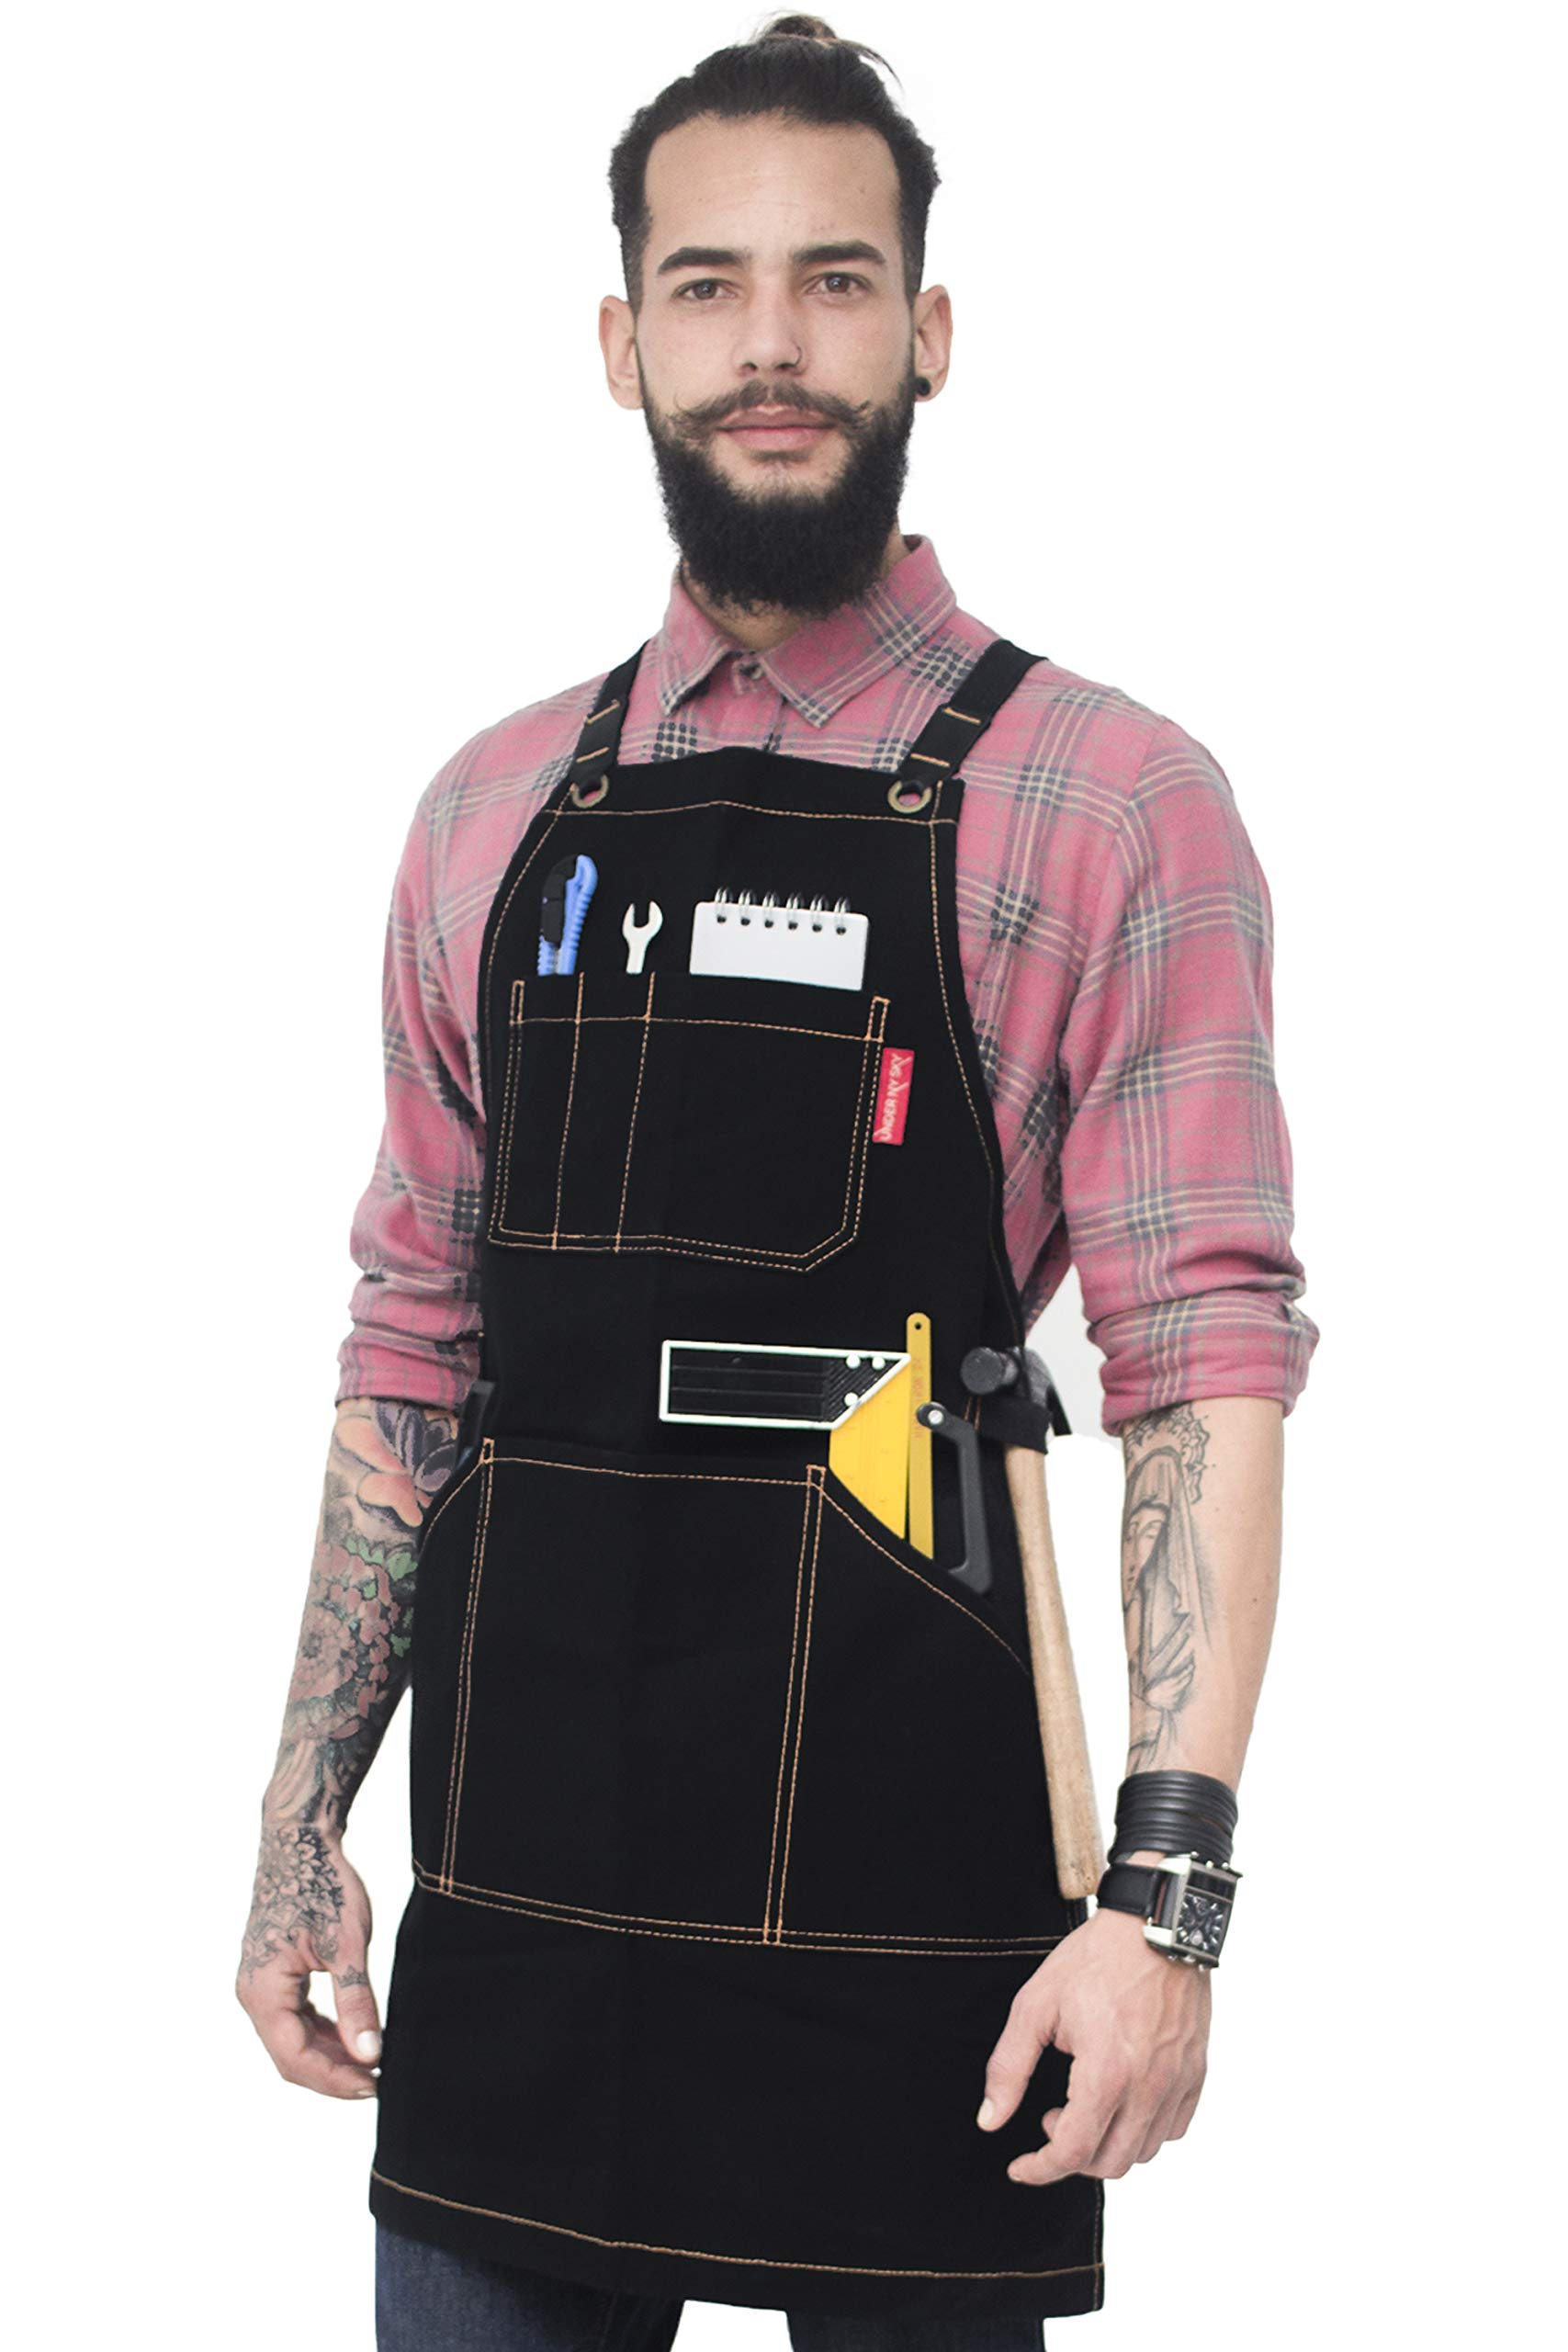 Under NY Sky Essential Black Apron – Heavy Duty Waxed Canvas, Cross-Back with Split-Leg, Leather Reinforcement – Adjustable for Men, Women, Pro Mechanic, Welding, Woodwork, Blacksmith, Server Aprons